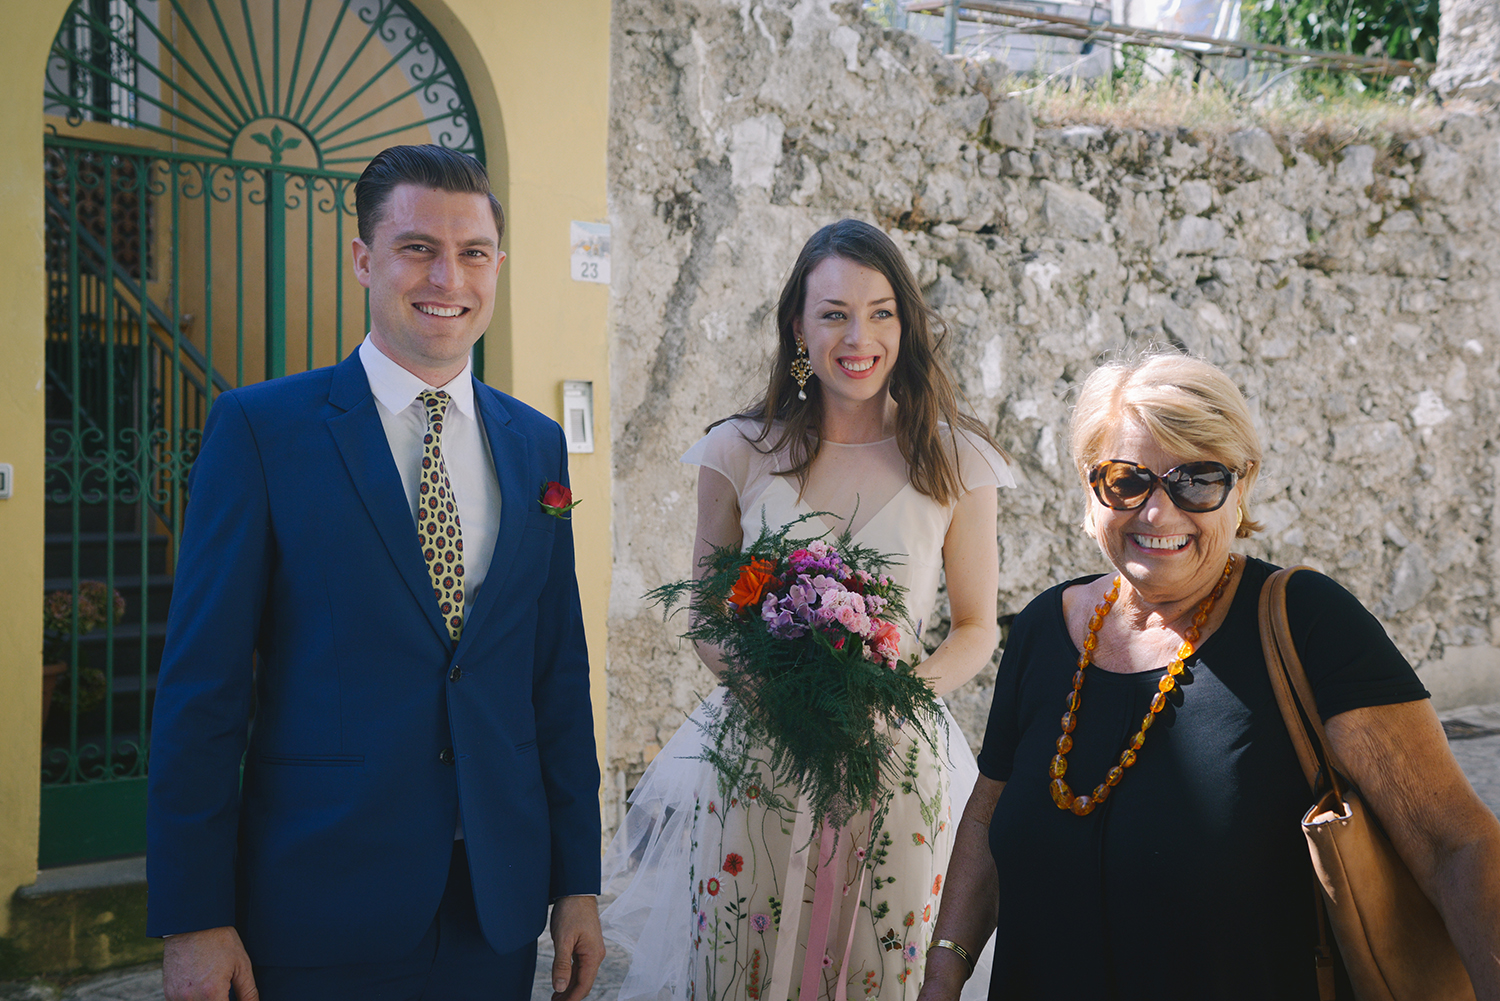 Well+Travelled+Bride+Giovanna+D'Amato+Marriage+Celebrant+Kelsey+Genna.jpg